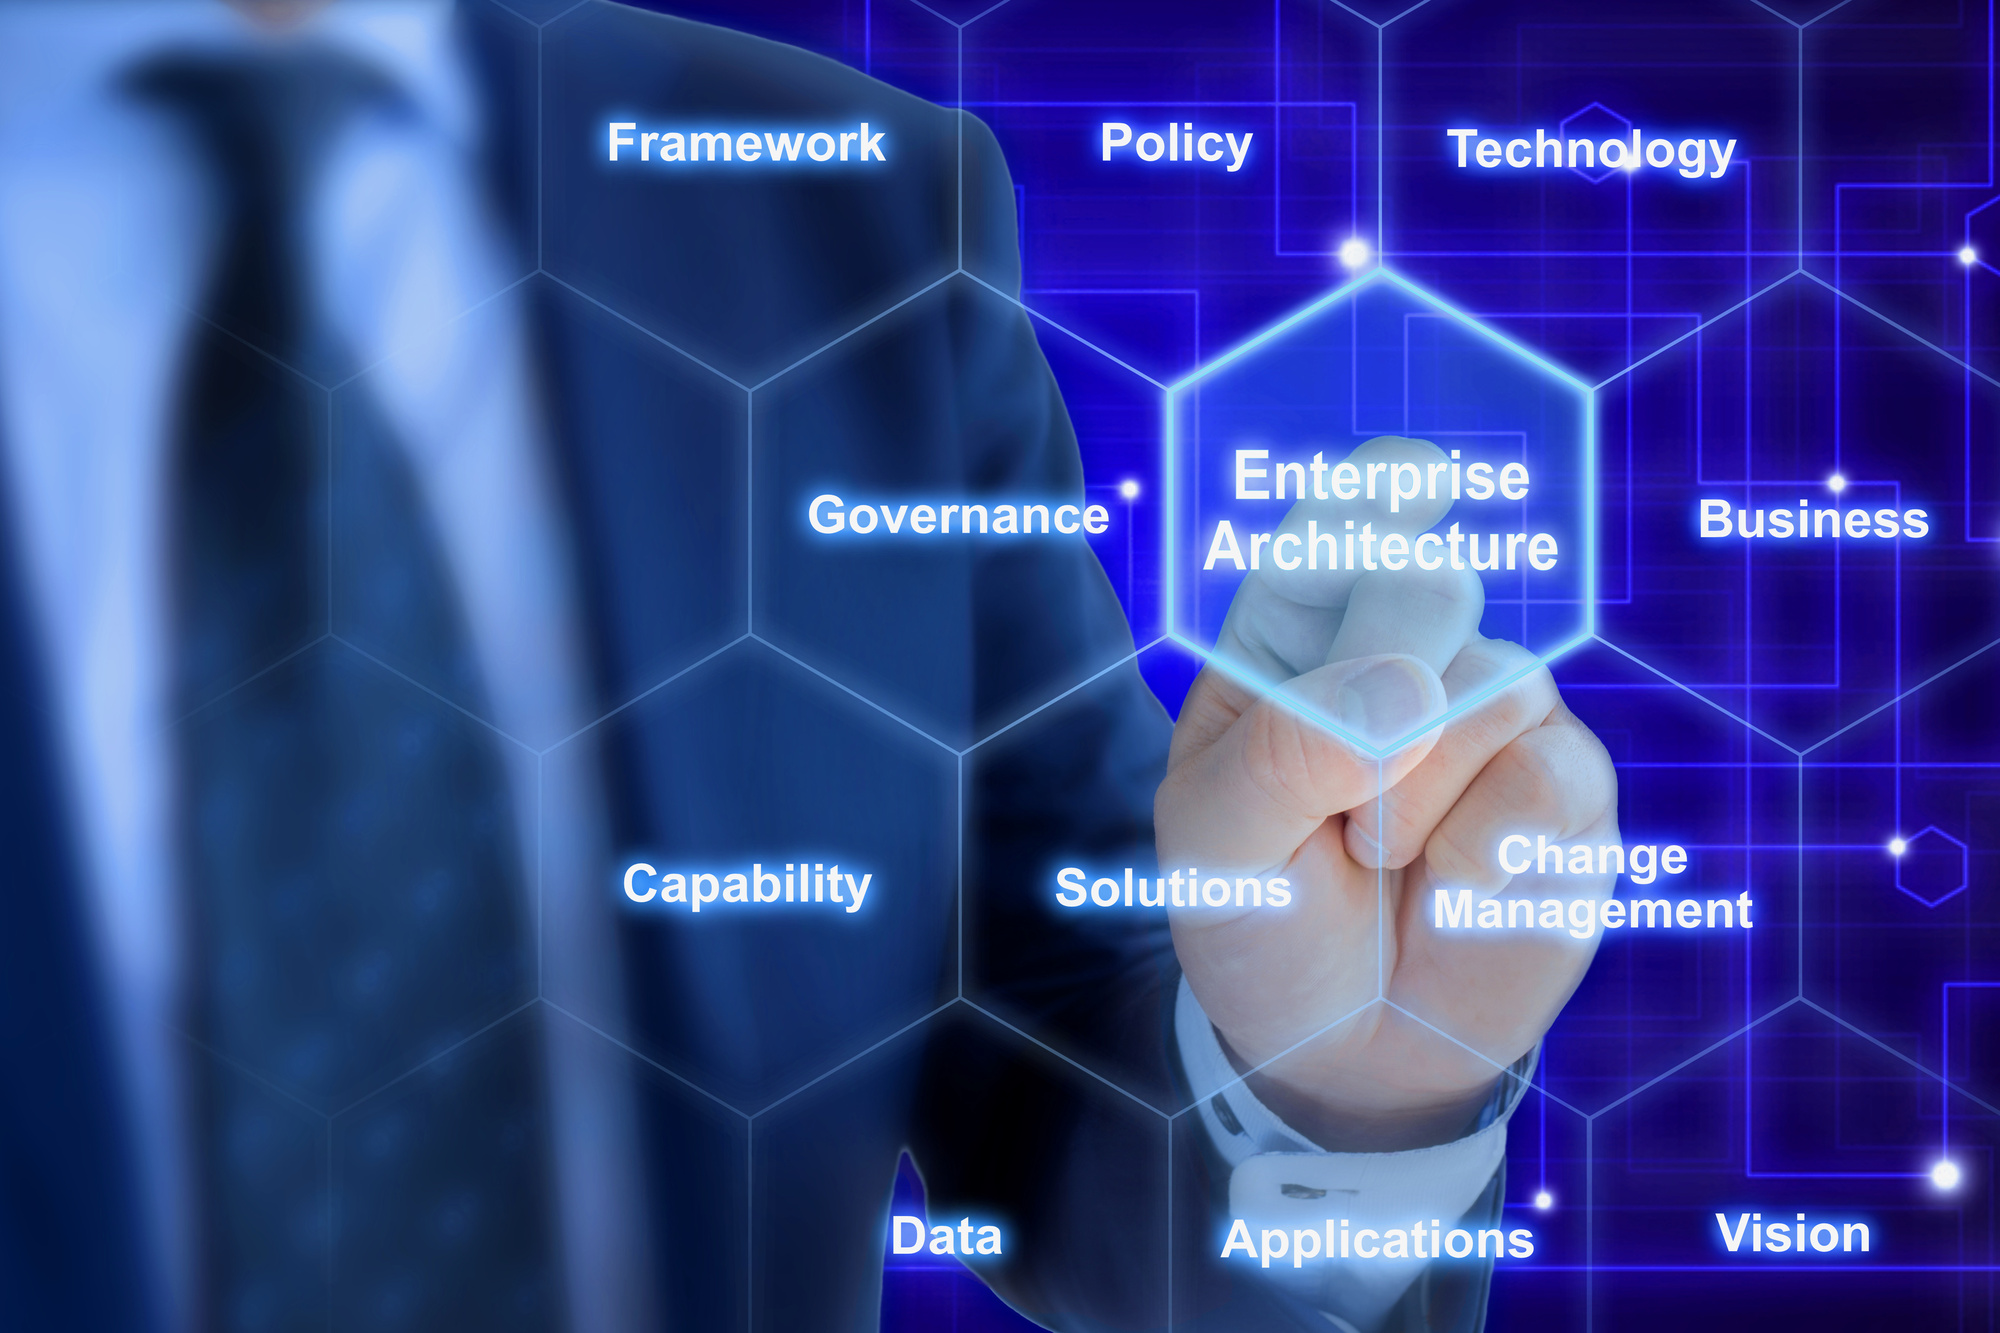 Future-Proofing The Modern Business Through Legacy-Smashing Enterprise Architecture